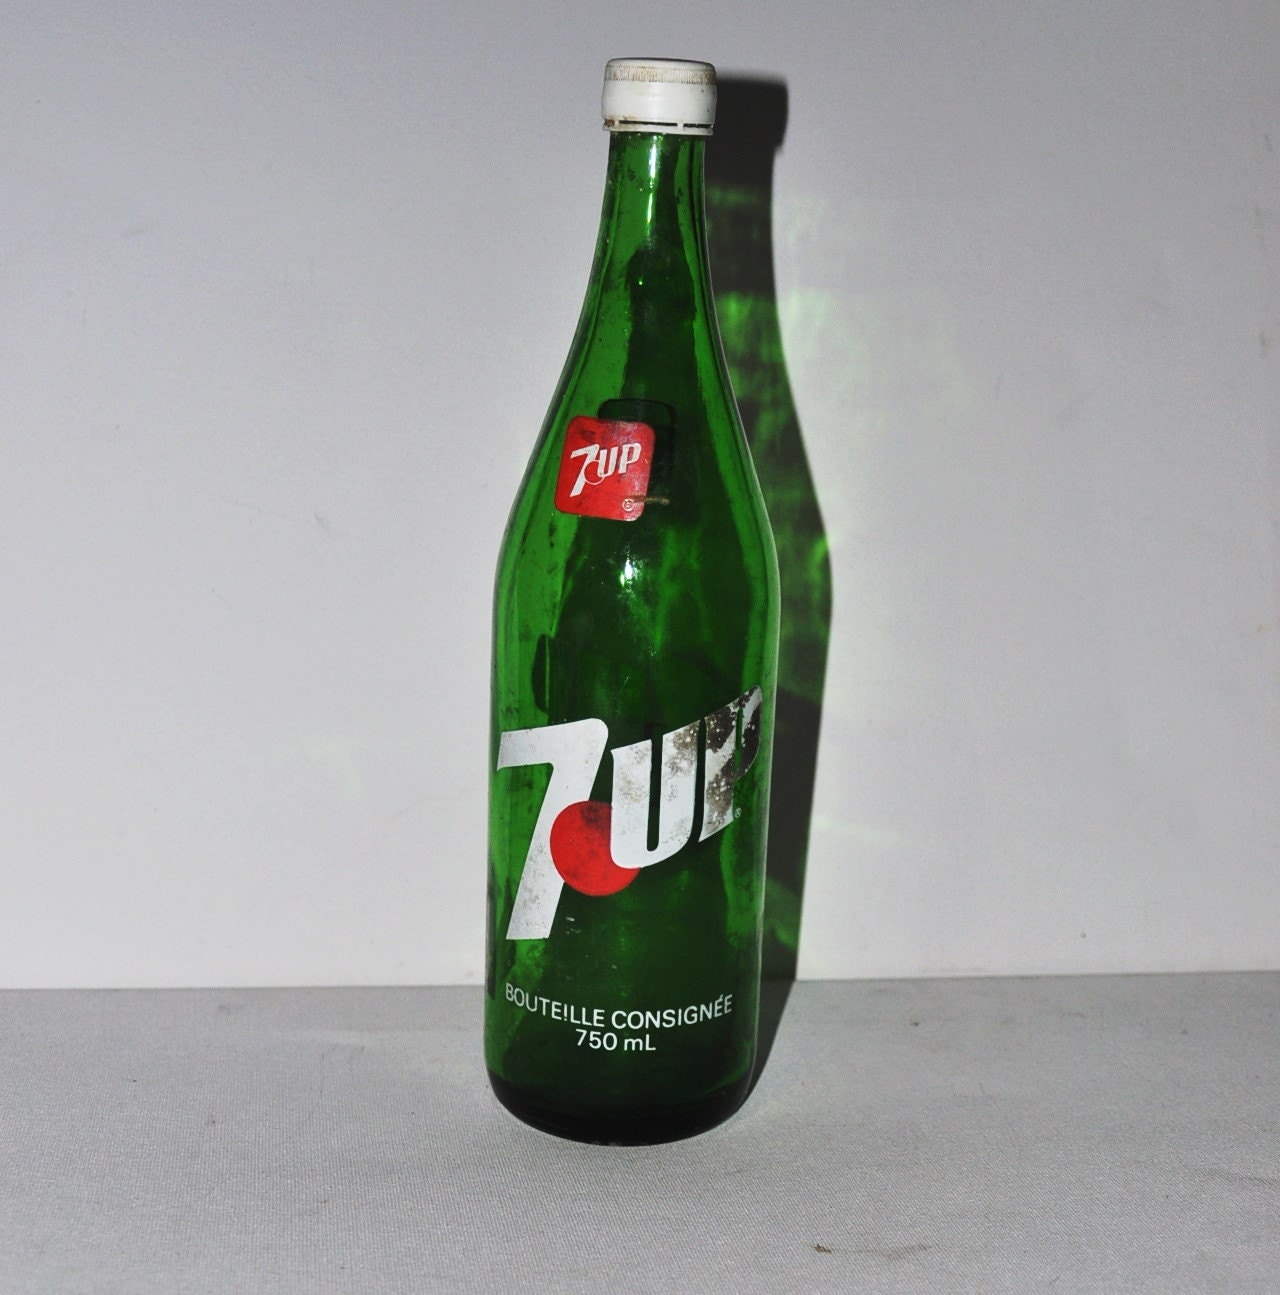 Vintage Large 1980s 7up Glass Bottle 12 Tall